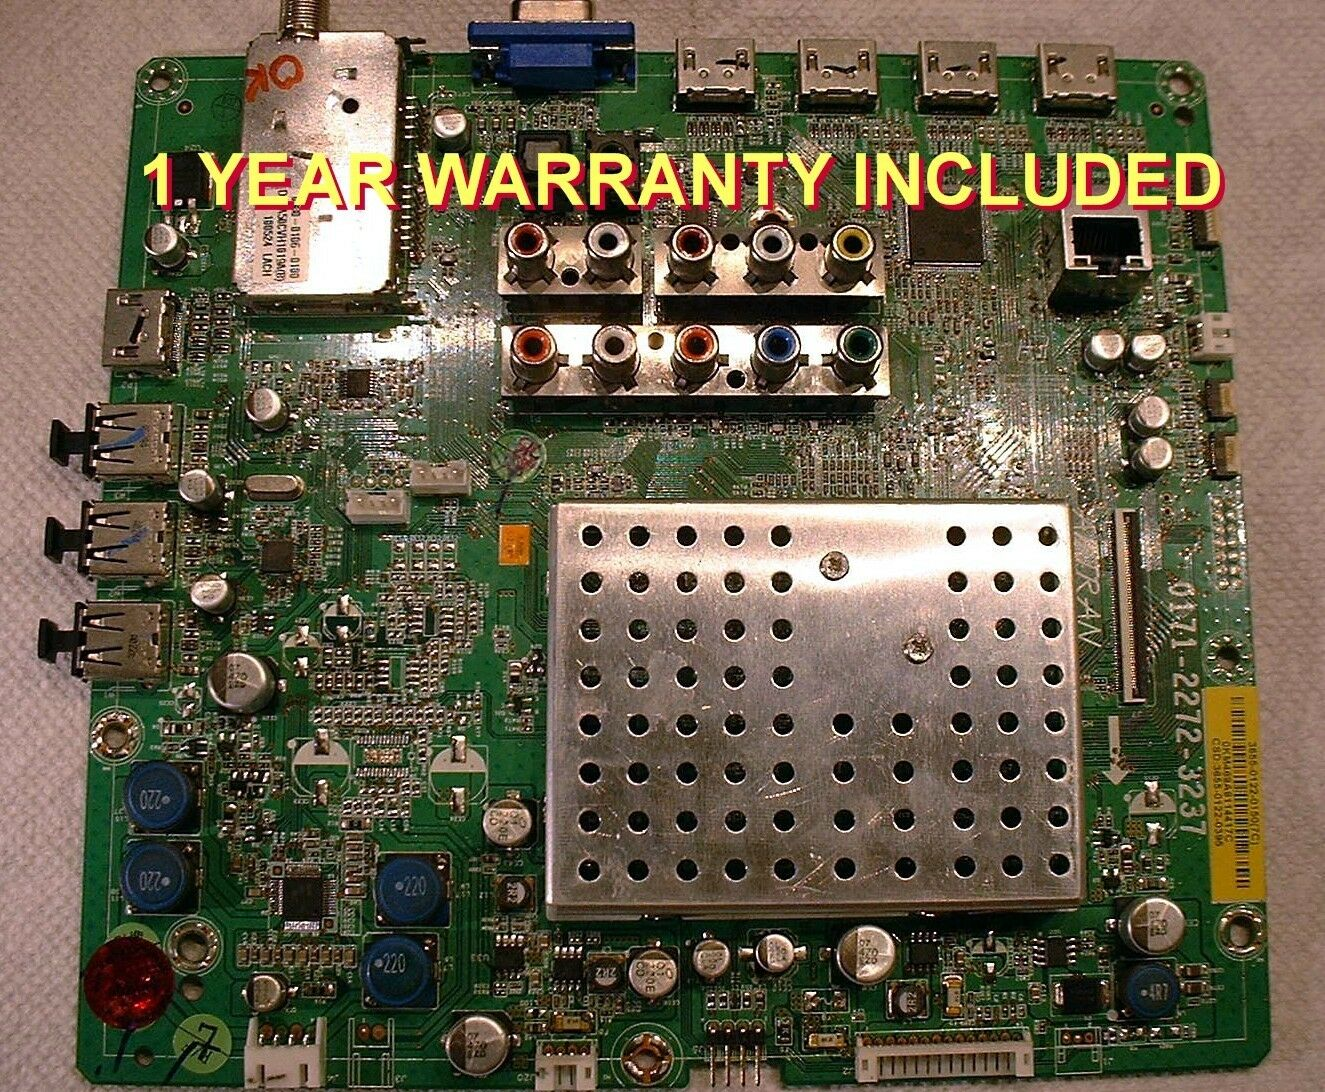 3655-0122-0150    0171-2272-3237     Vizio Xvt553sv Main Board  Trade In Service